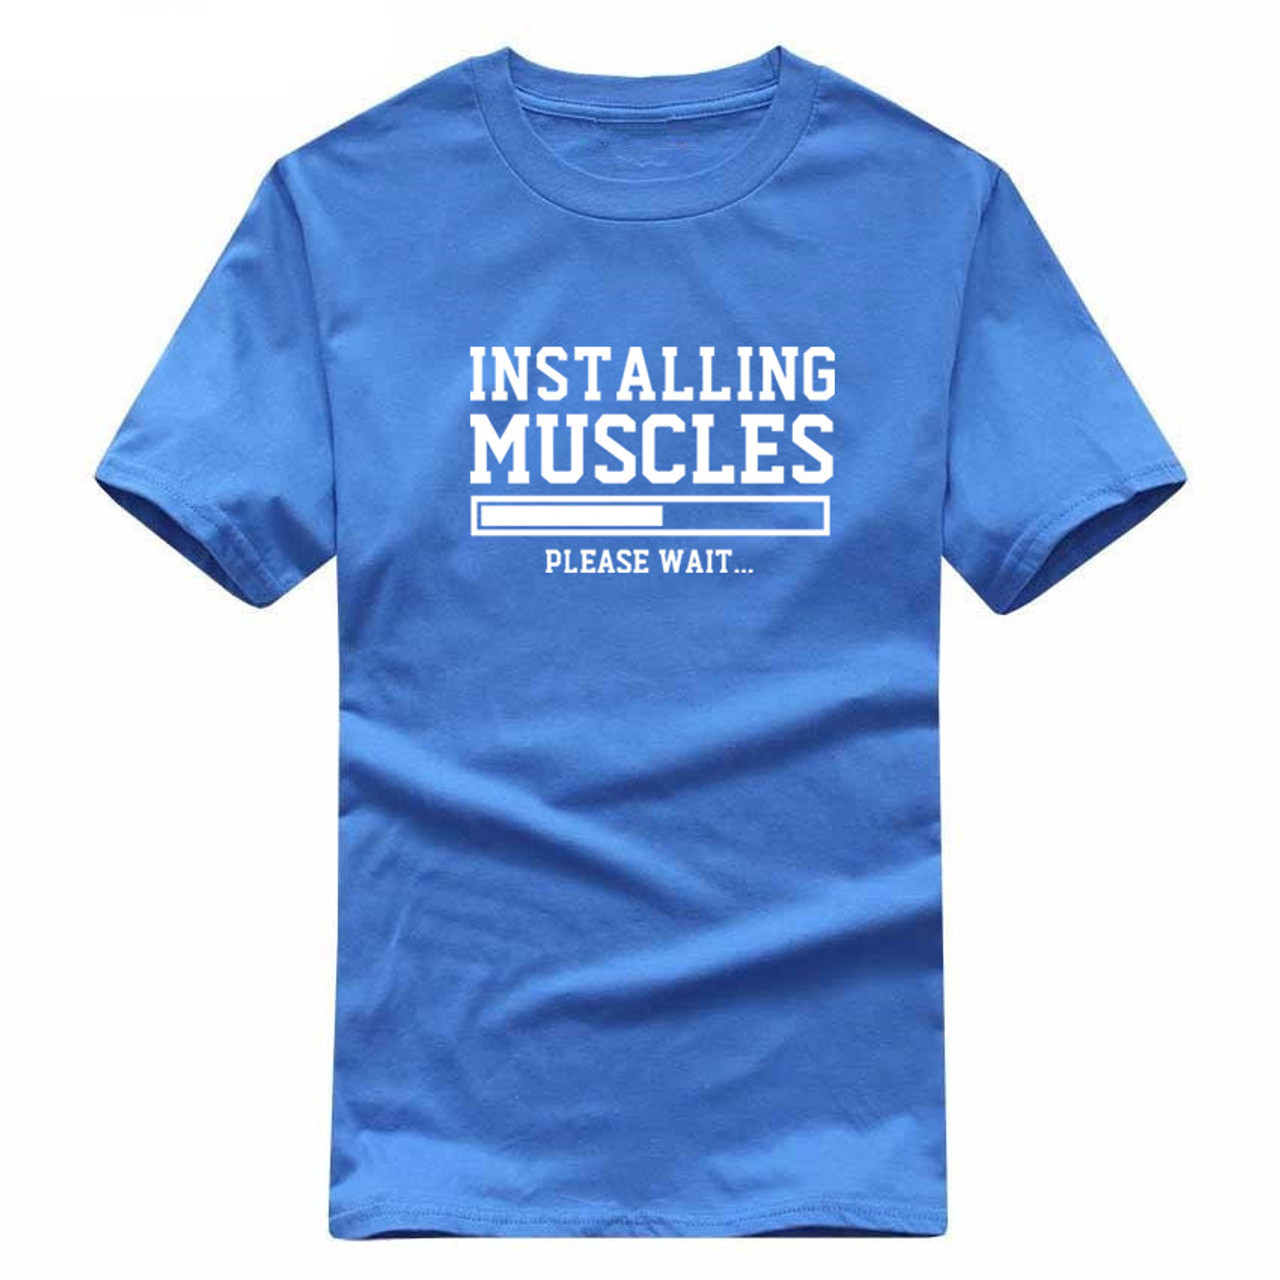 New INSTALLING MUSCLES Funny Print Mens T Shirts LIFTBRO WORKOUT SLOGAN BIRTHDAY TShirt Tee Unisex More